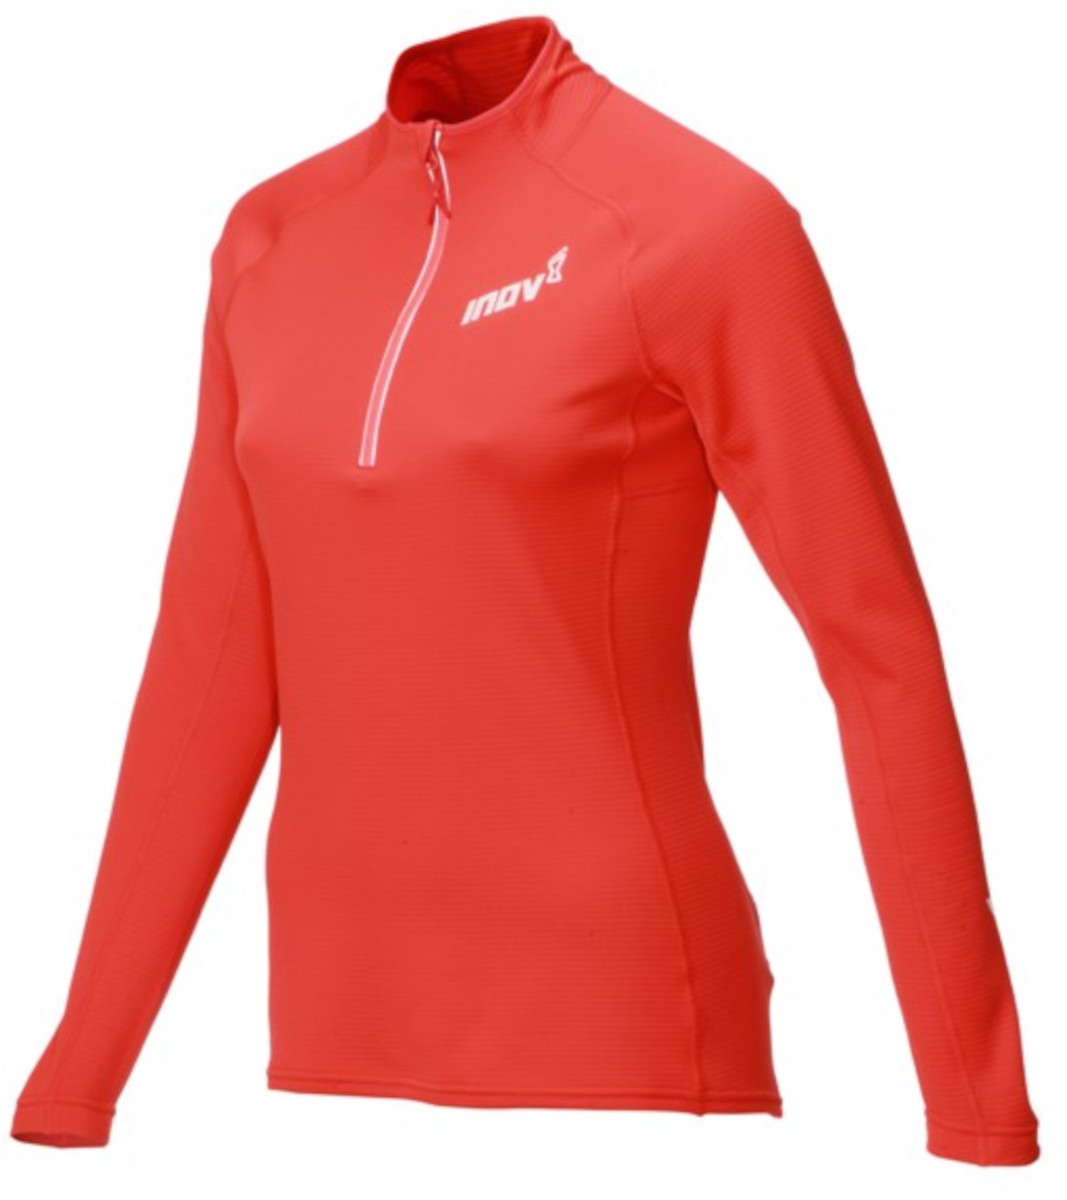 Hanorac INOV-8 Sweatshirt INOV-8 TECHNICAL MID HZ W